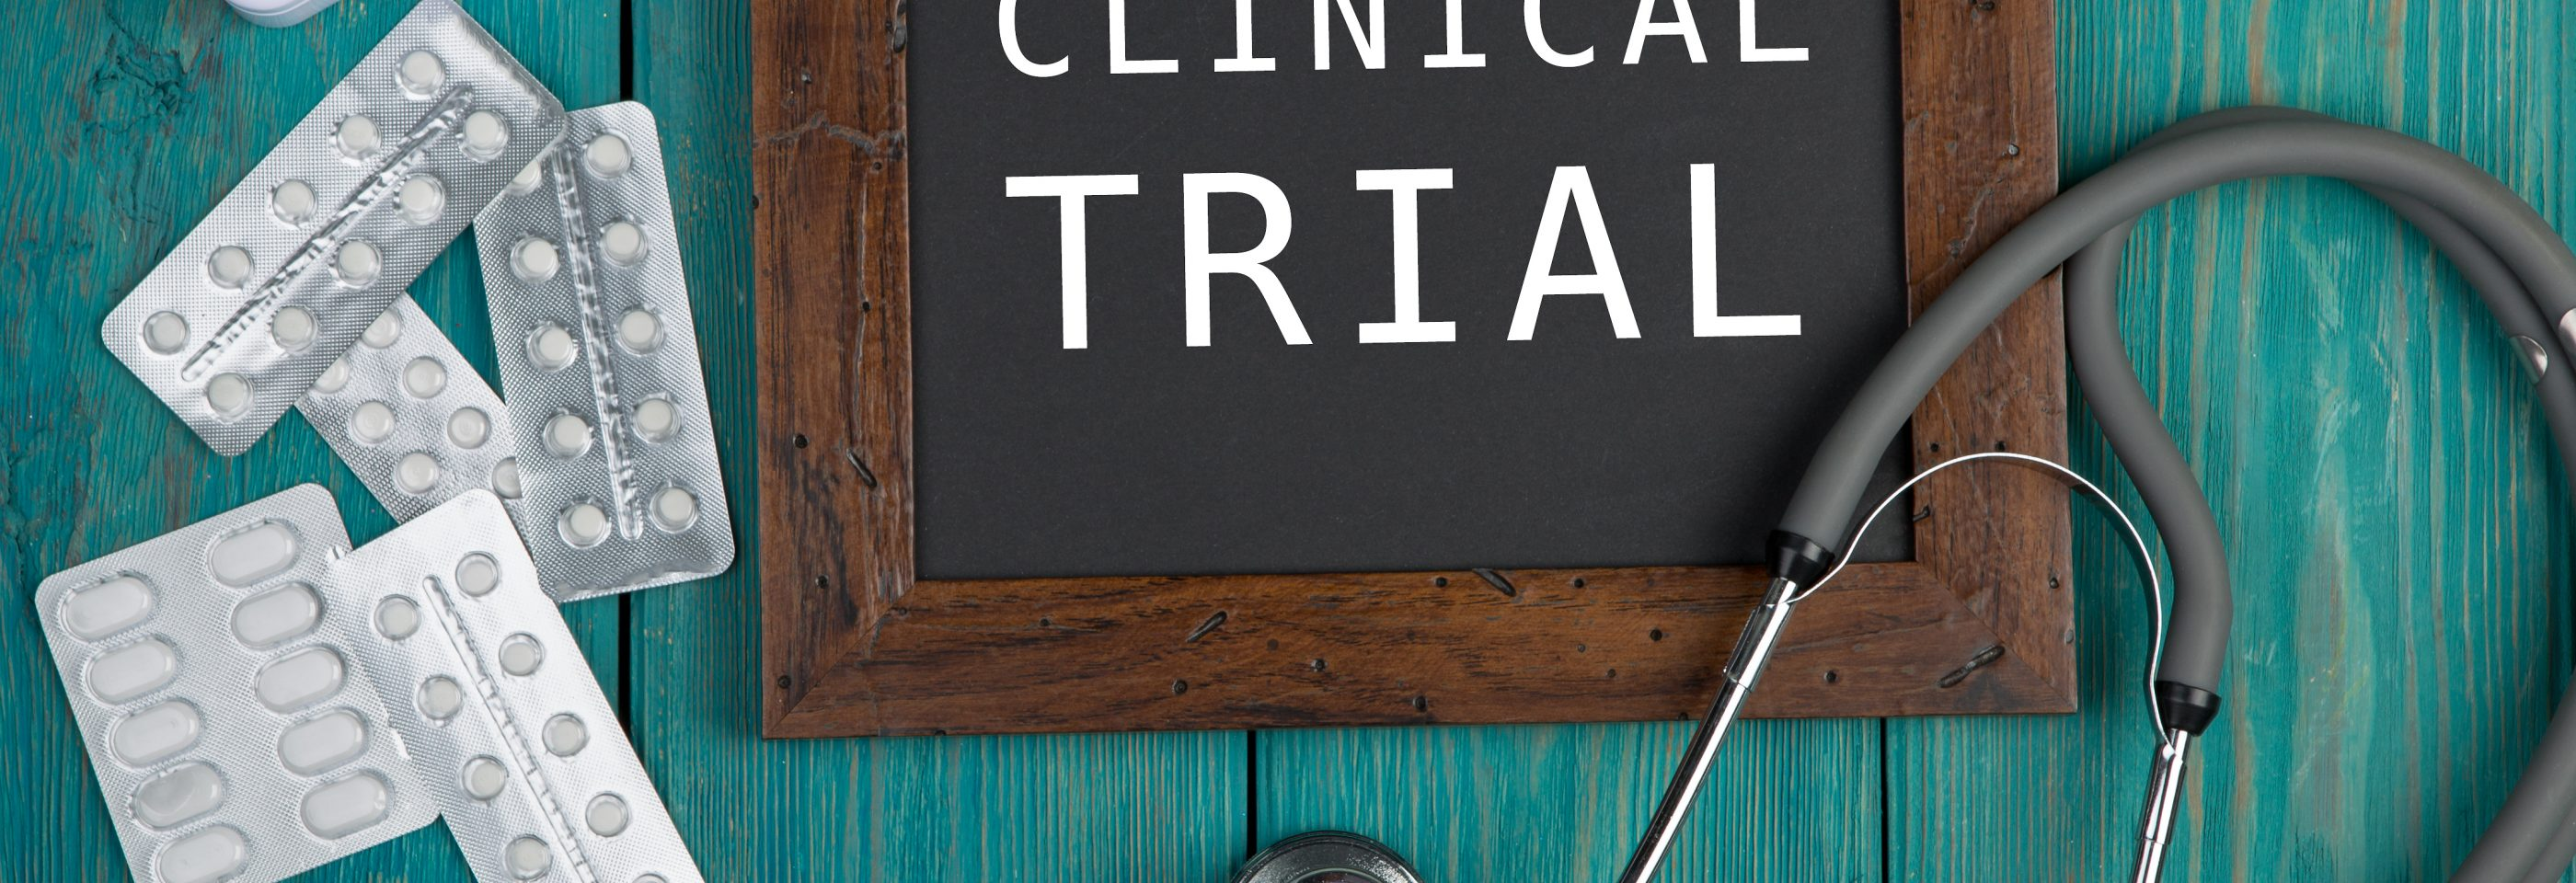 FDA Clears Way for Phase 2 Trial of AV-101 for Levodopa-Induced Dyskinesia